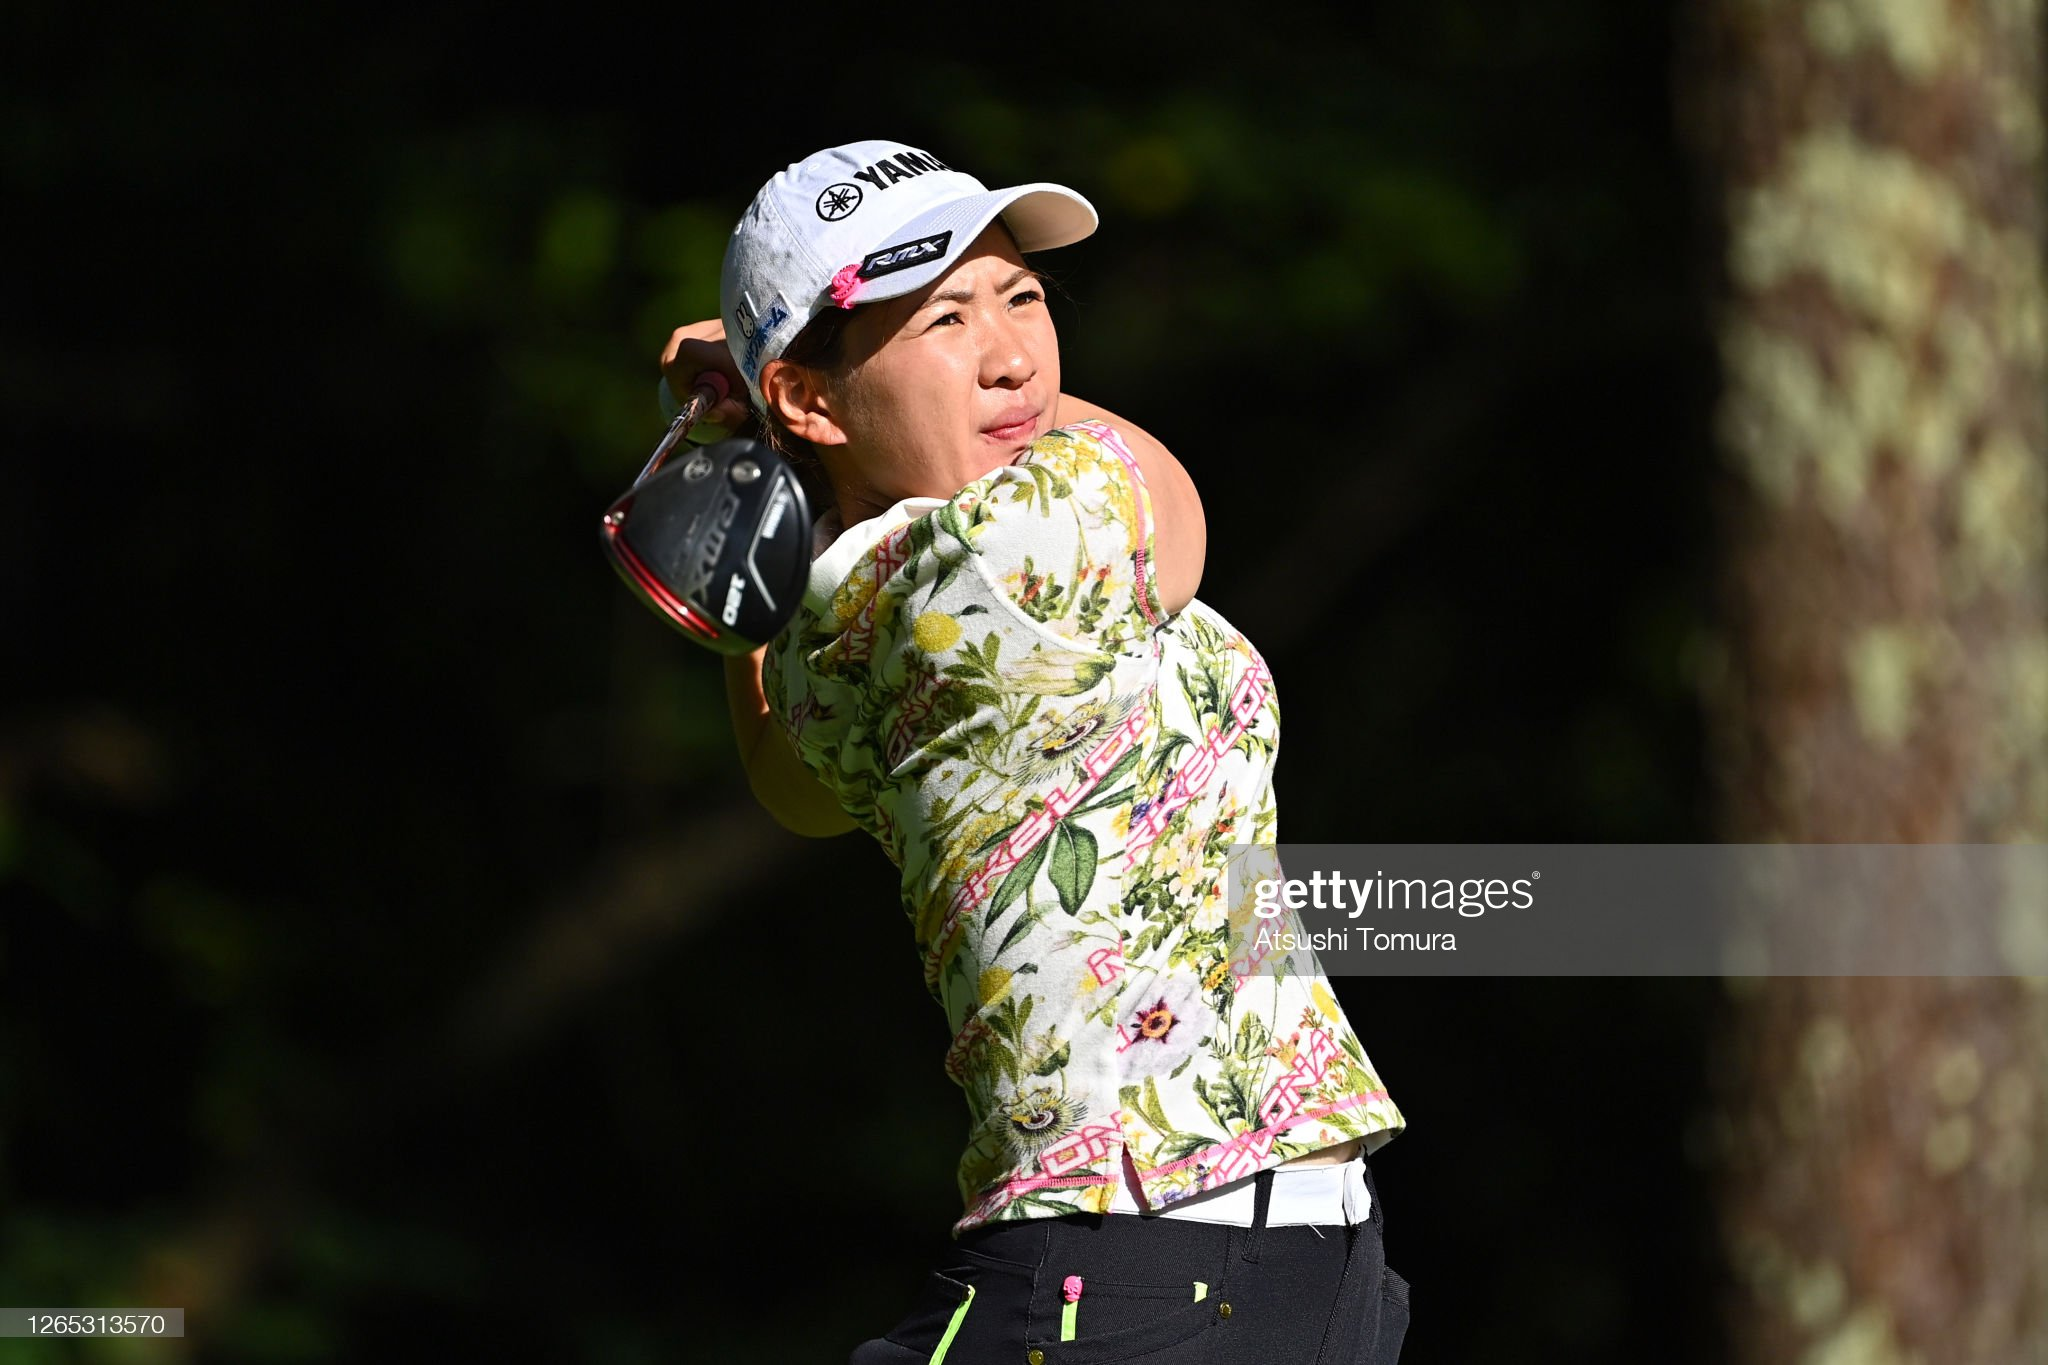 https://media.gettyimages.com/photos/kana-nagai-of-japan-hits-her-tee-shot-on-the-2nd-hole-during-a-round-picture-id1265313570?s=2048x2048